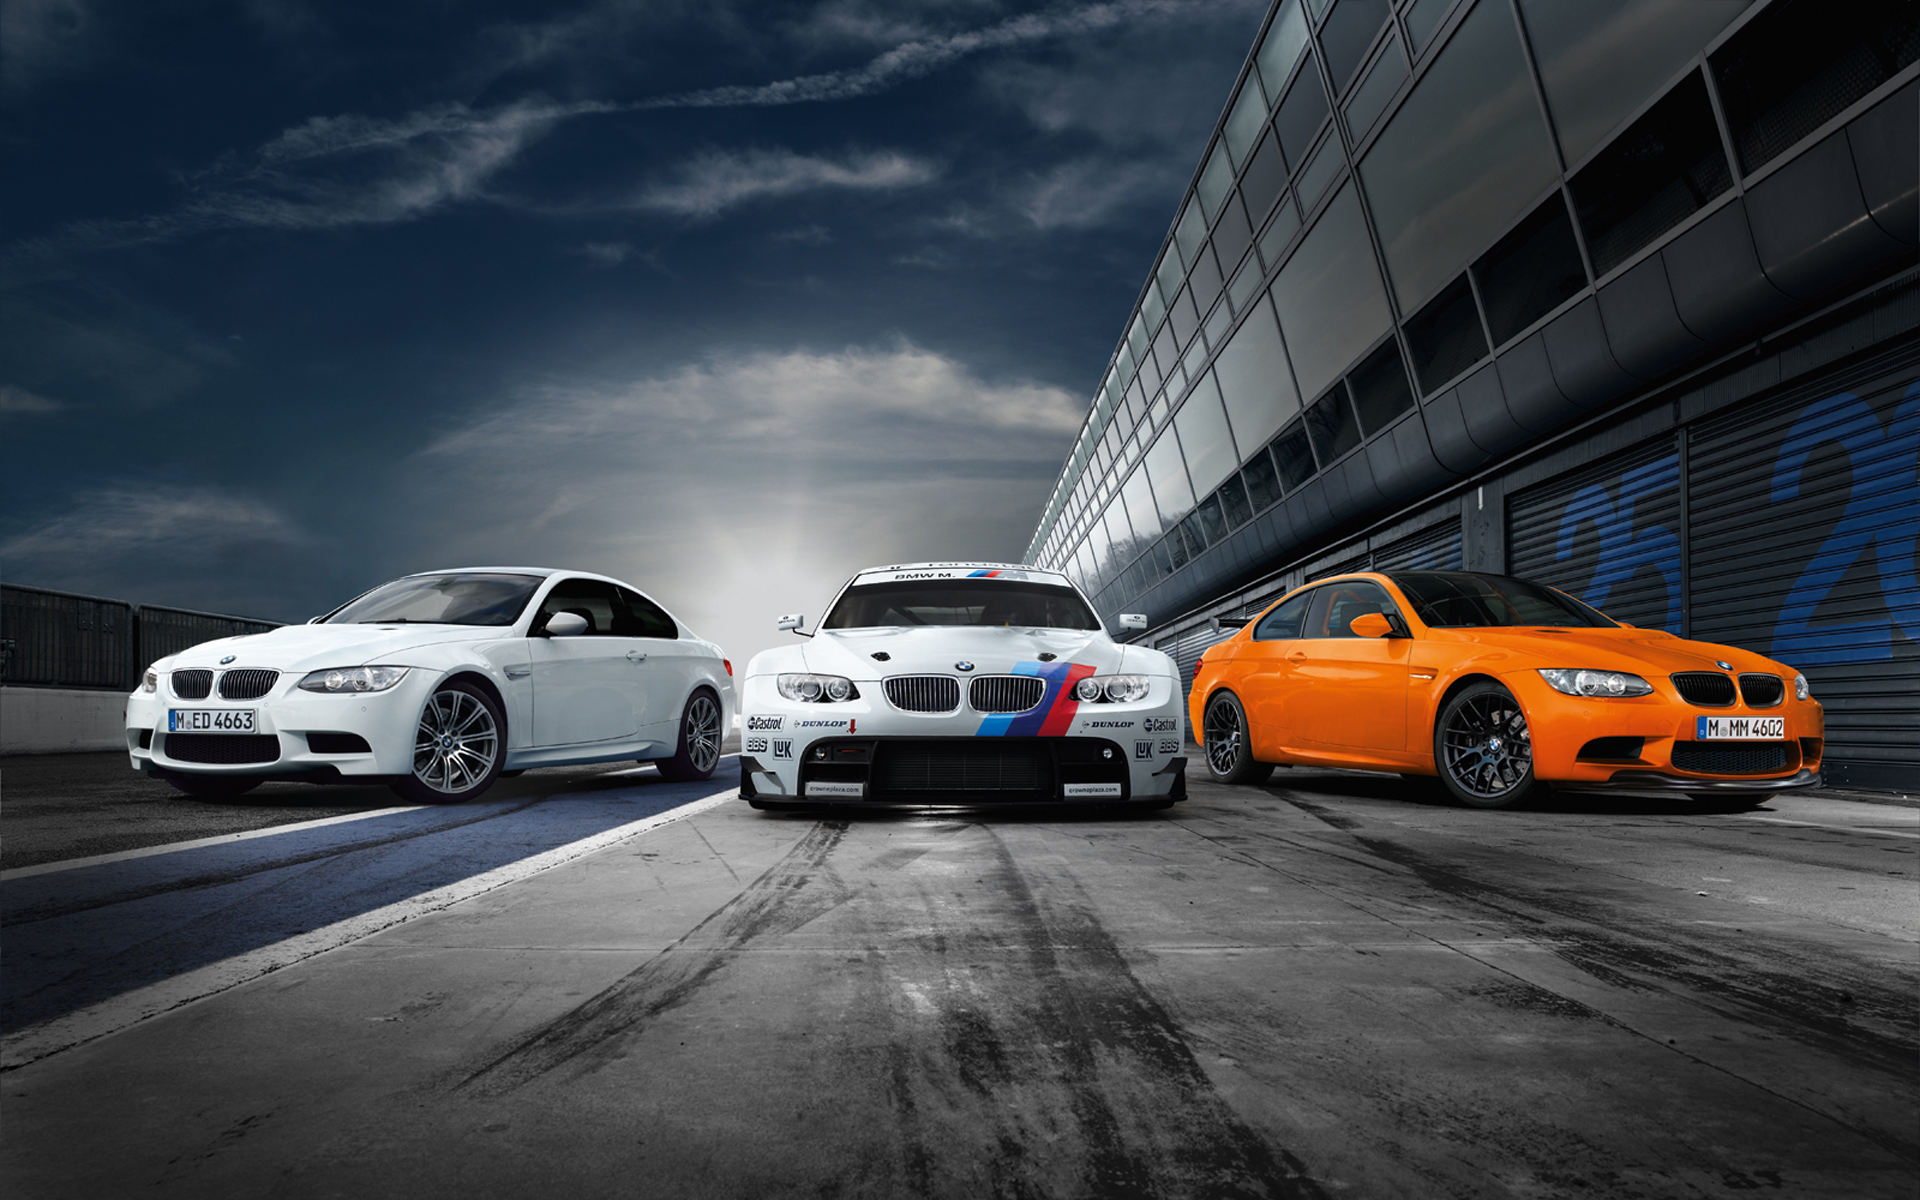 Lovely BMW M3 HQ Wallpapers | Full HD Pictures